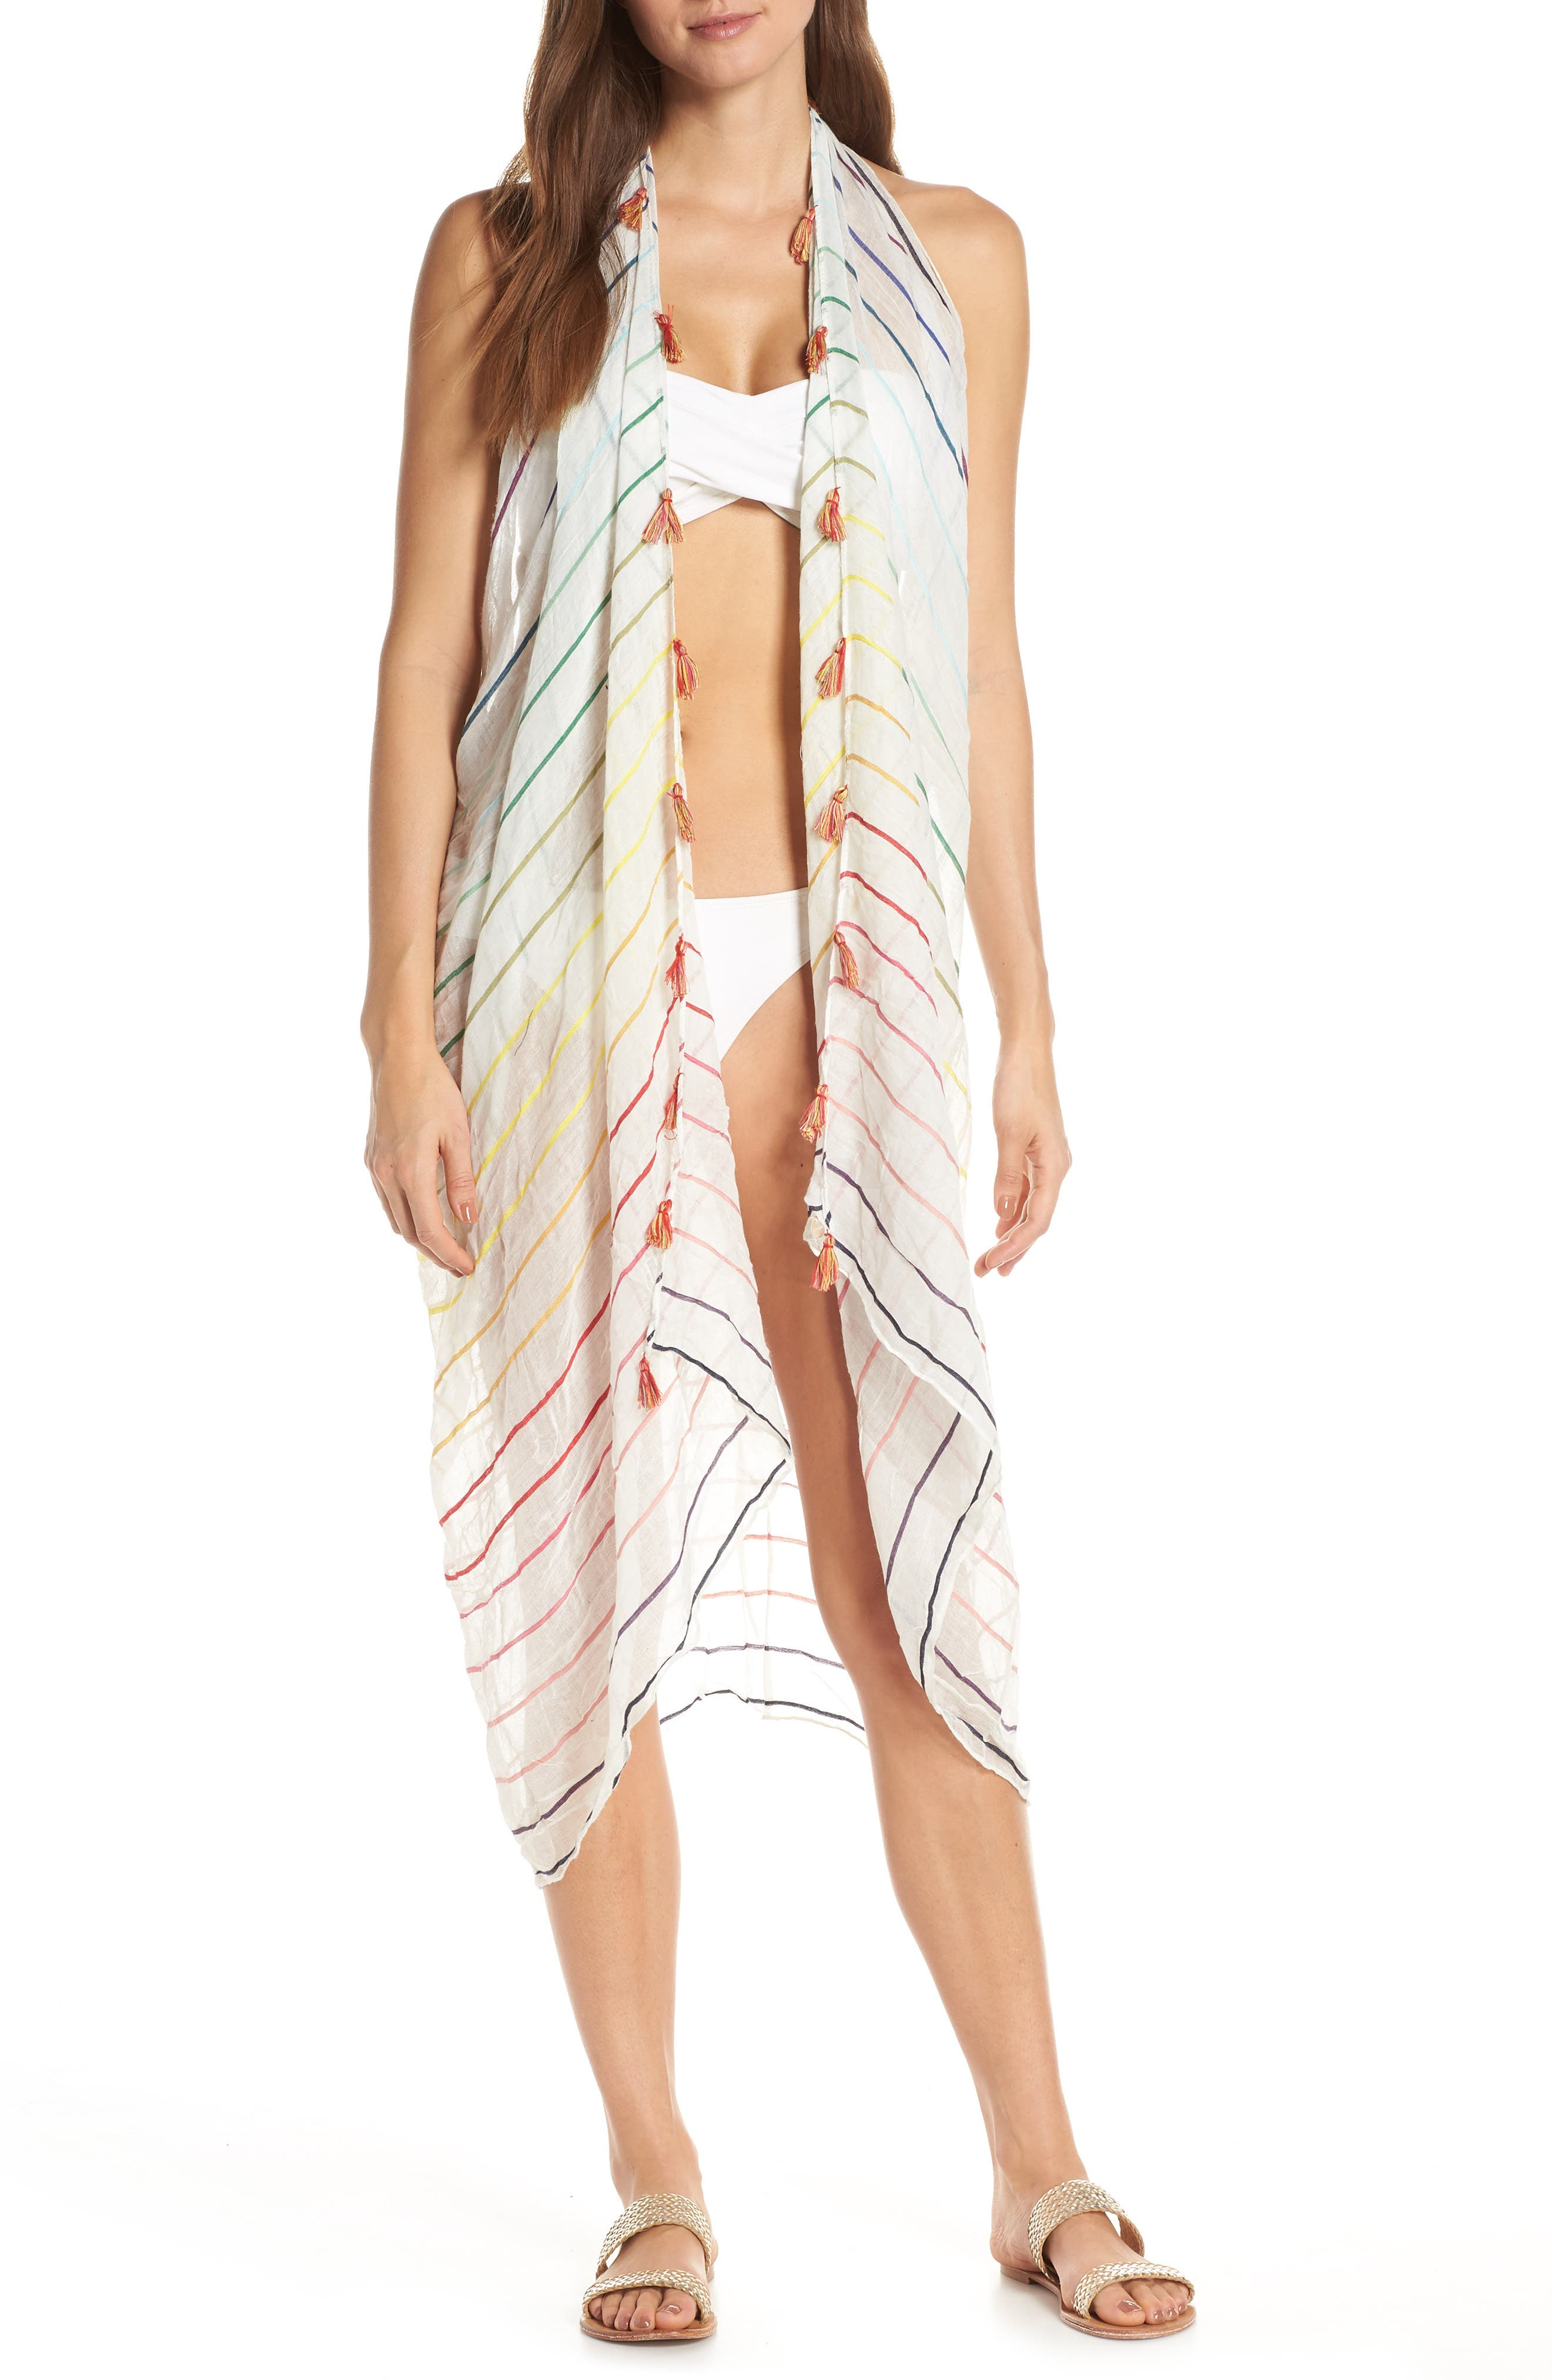 Pool To Party Spirit Cover-Up Vest, Size One Size - White